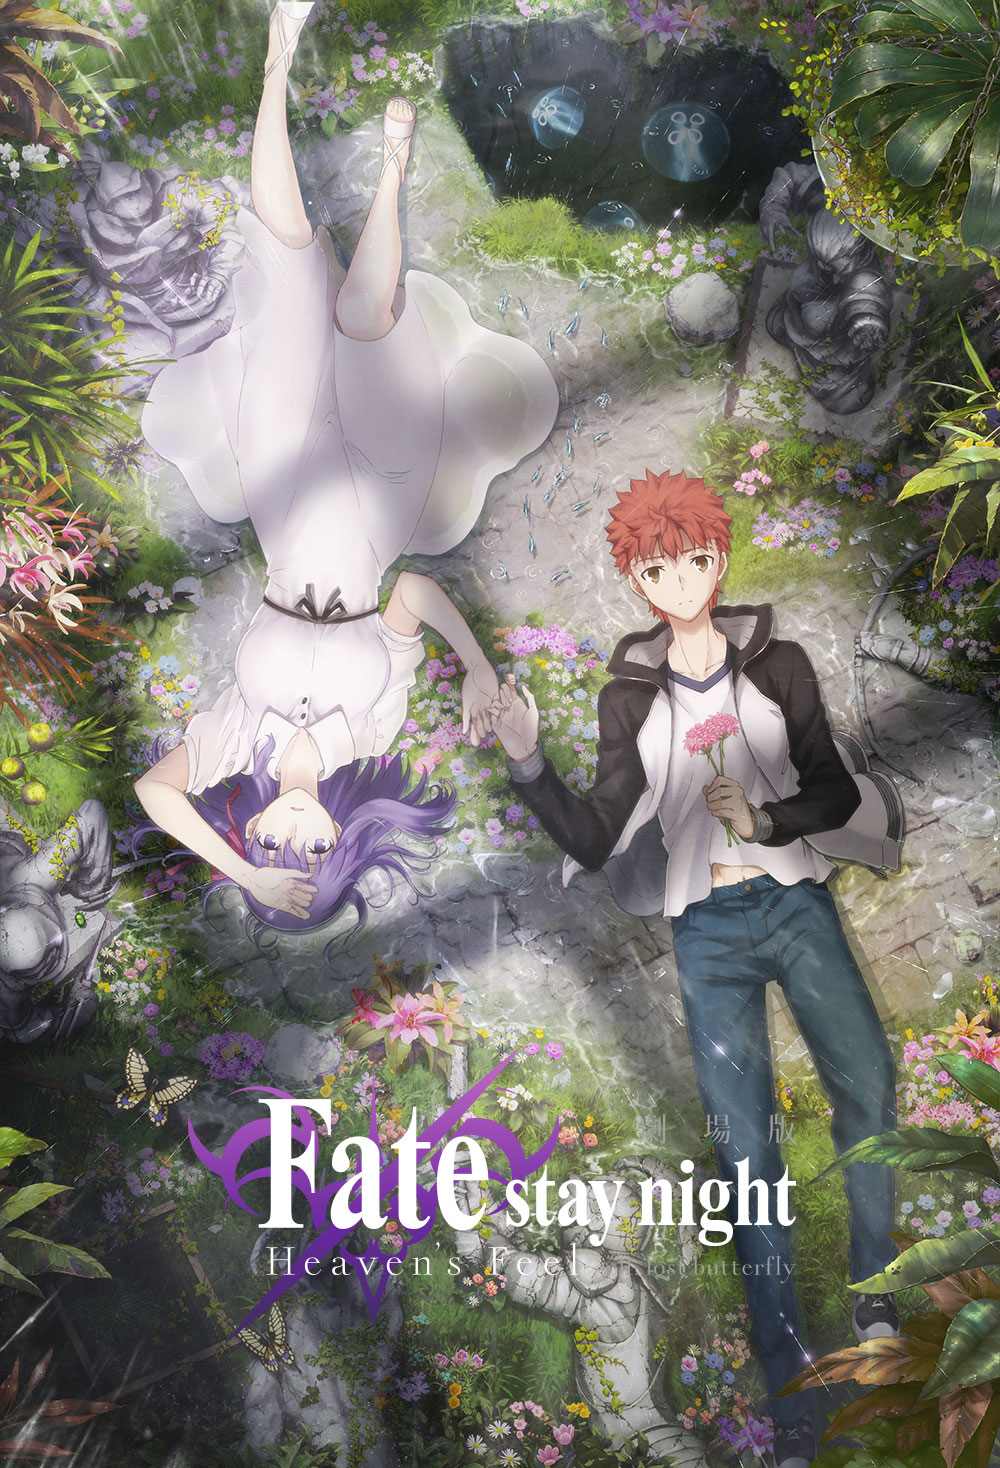 [雪飘工作室][剧场版 Fate/stay night Heaven's Feel II.lost butterfly][1080p][繁體內嵌]